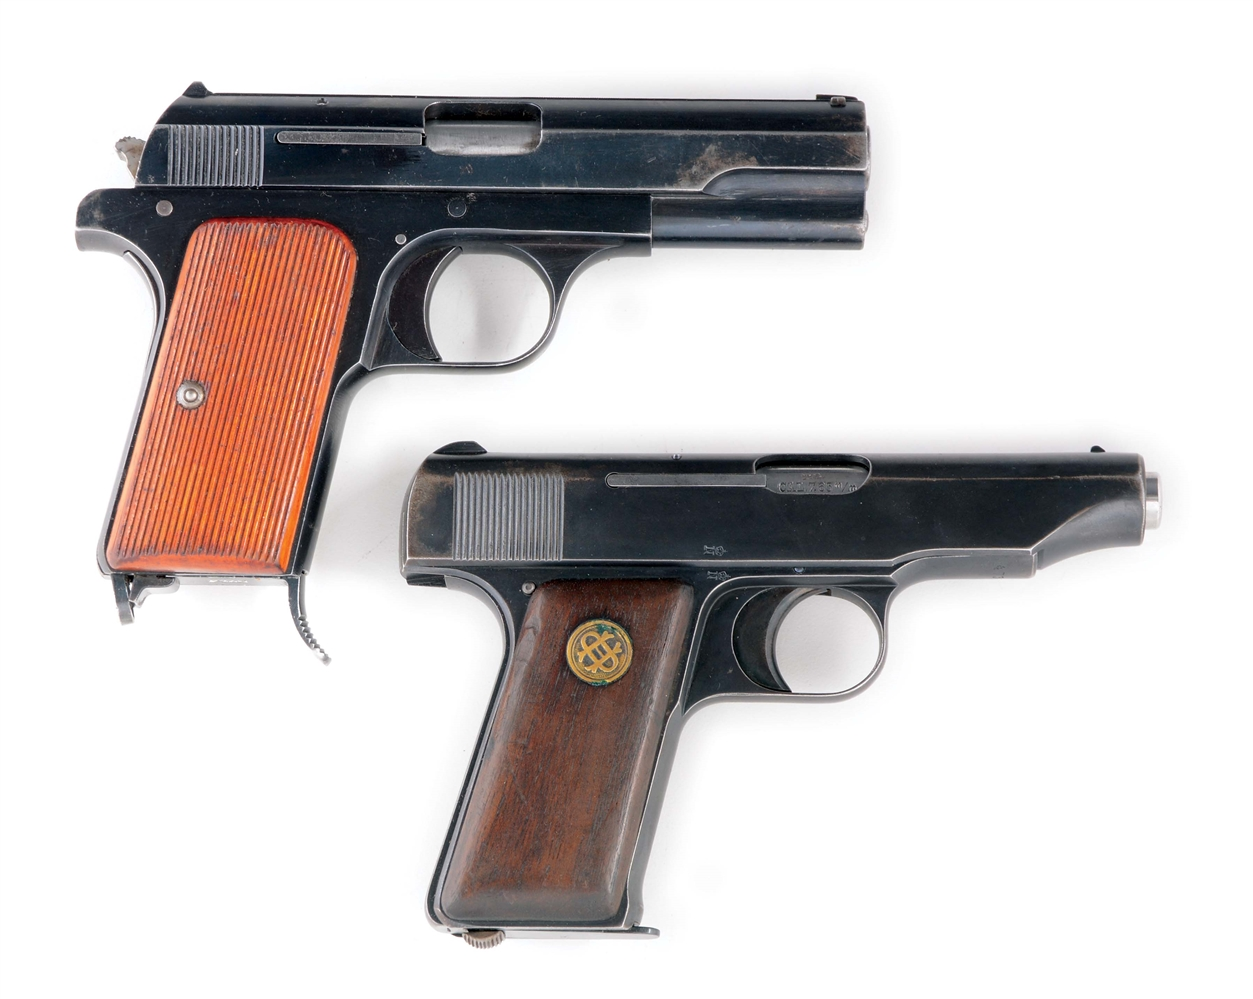 (C) TWO PRE-WAR SEMI-AUTOMATIC PISTOLS FROM FEMARU AND ORTGIES WITH HOLSTERS.